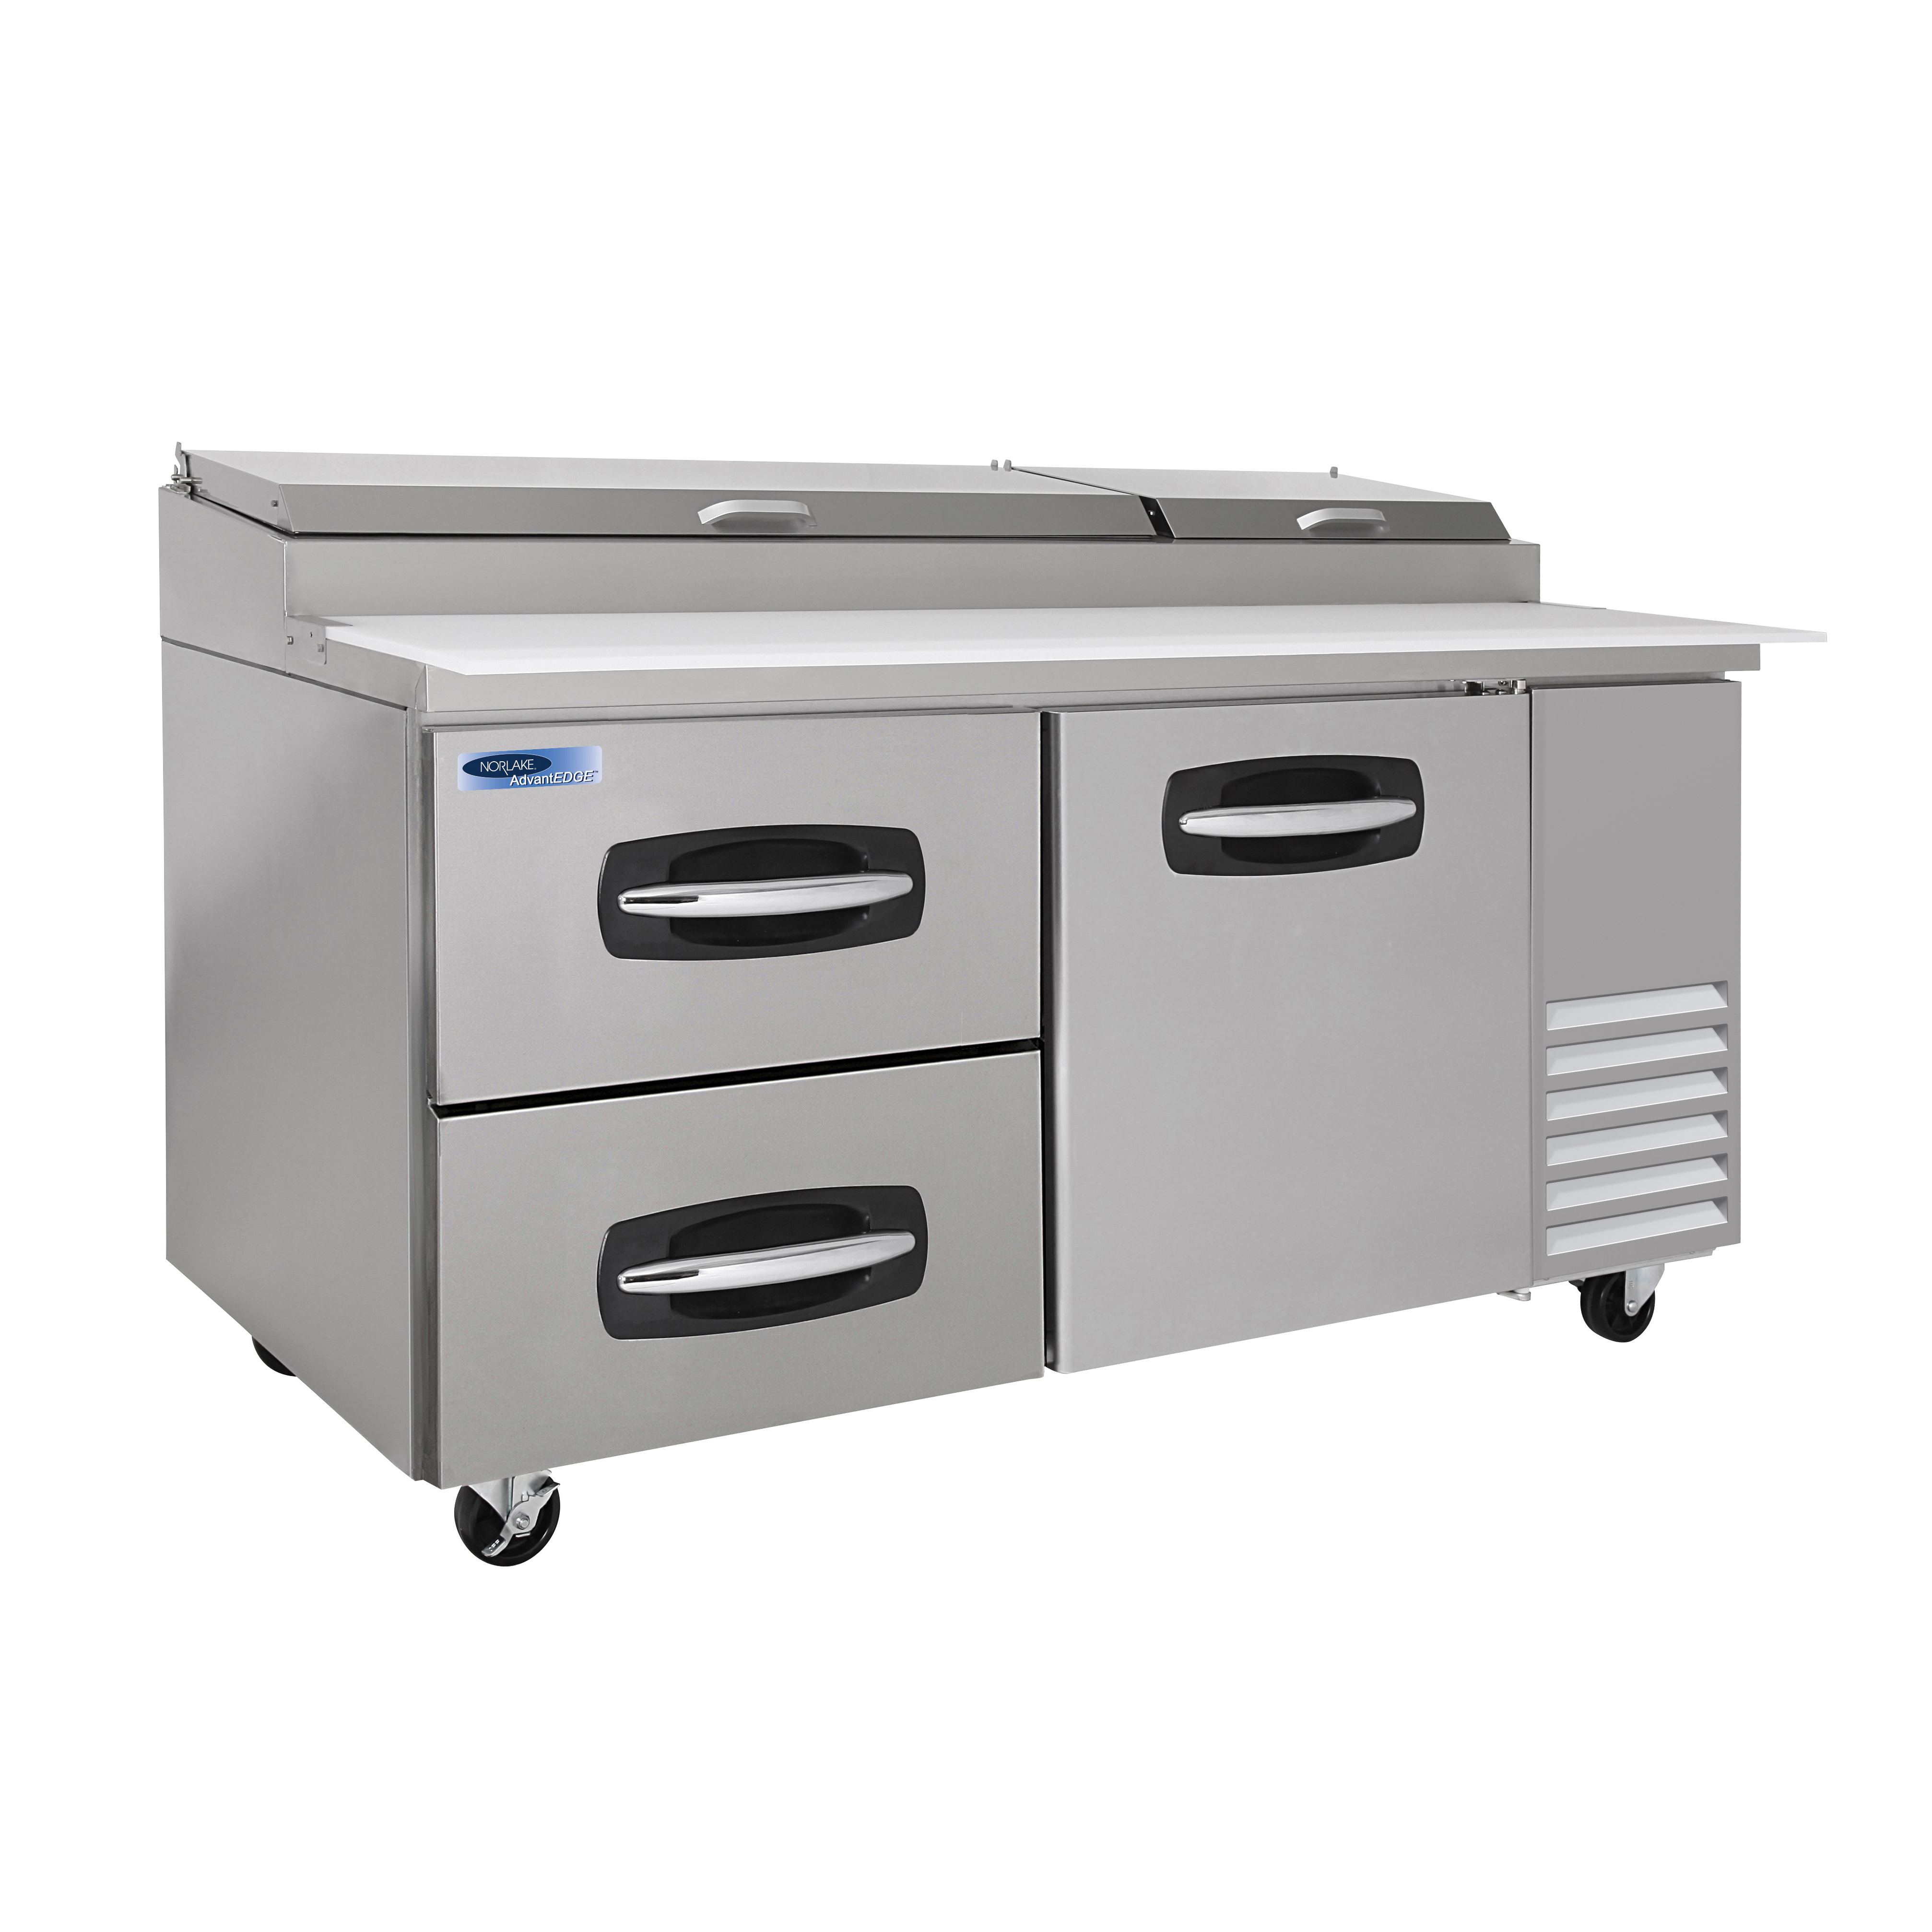 Nor-Lake NLPT67-003B refrigerated counter, pizza prep table